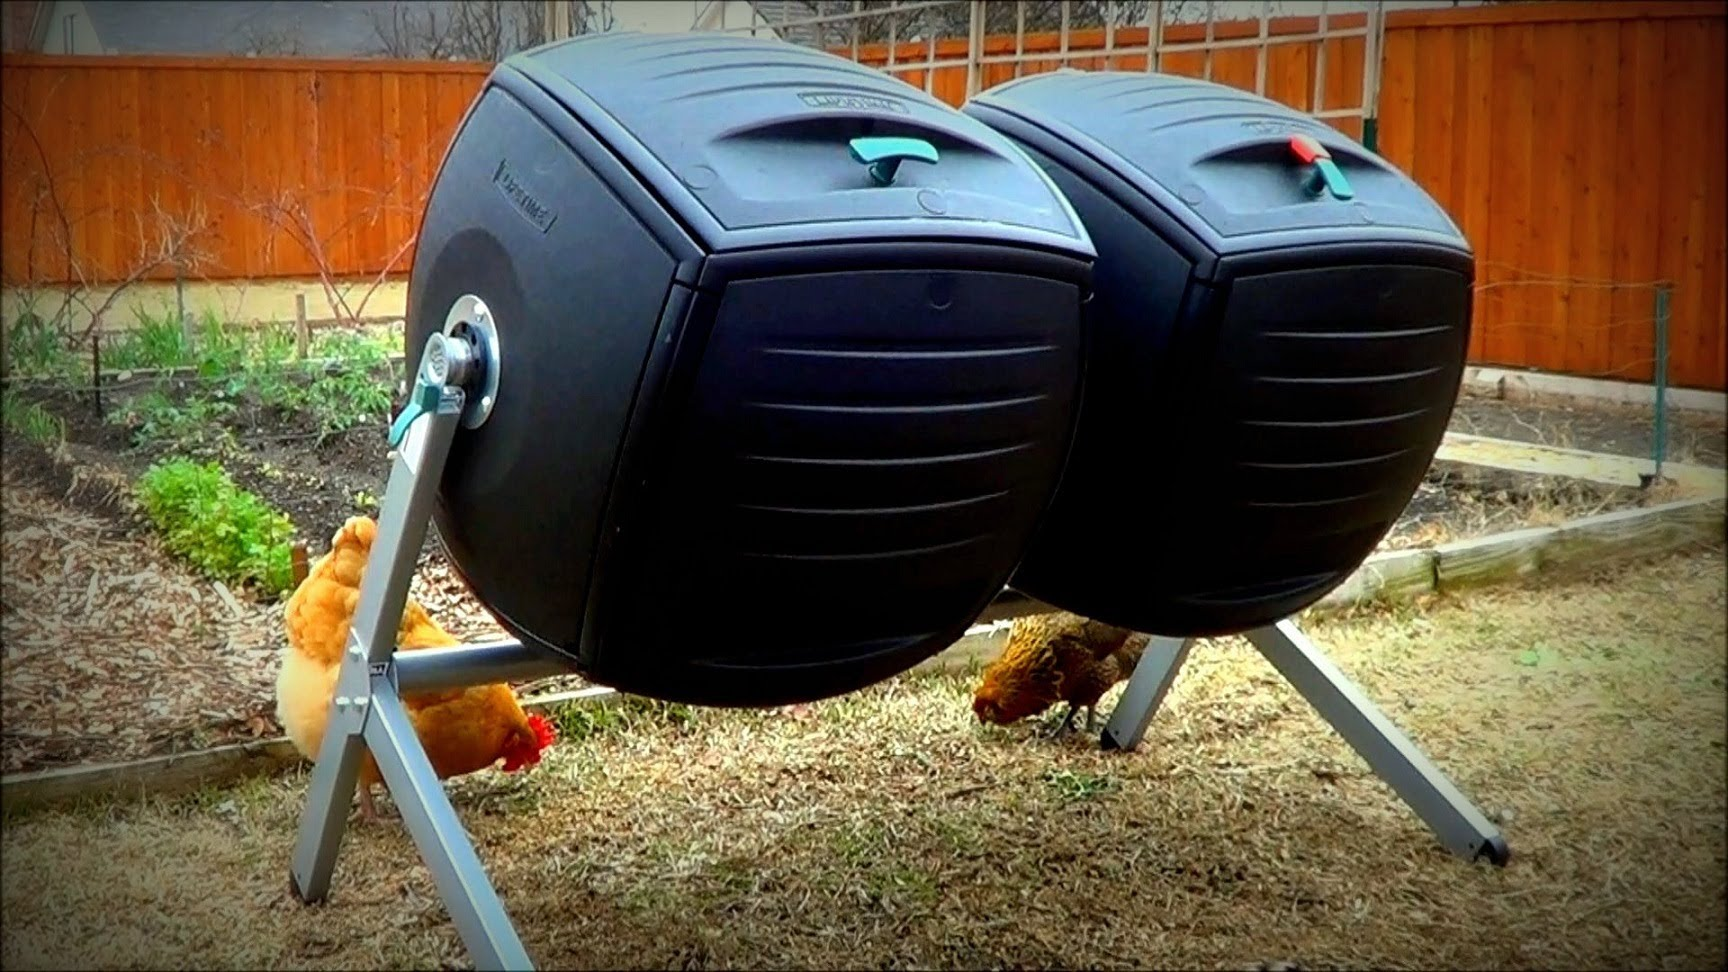 Compost Bins For Human Waste Composting Toilets Canada